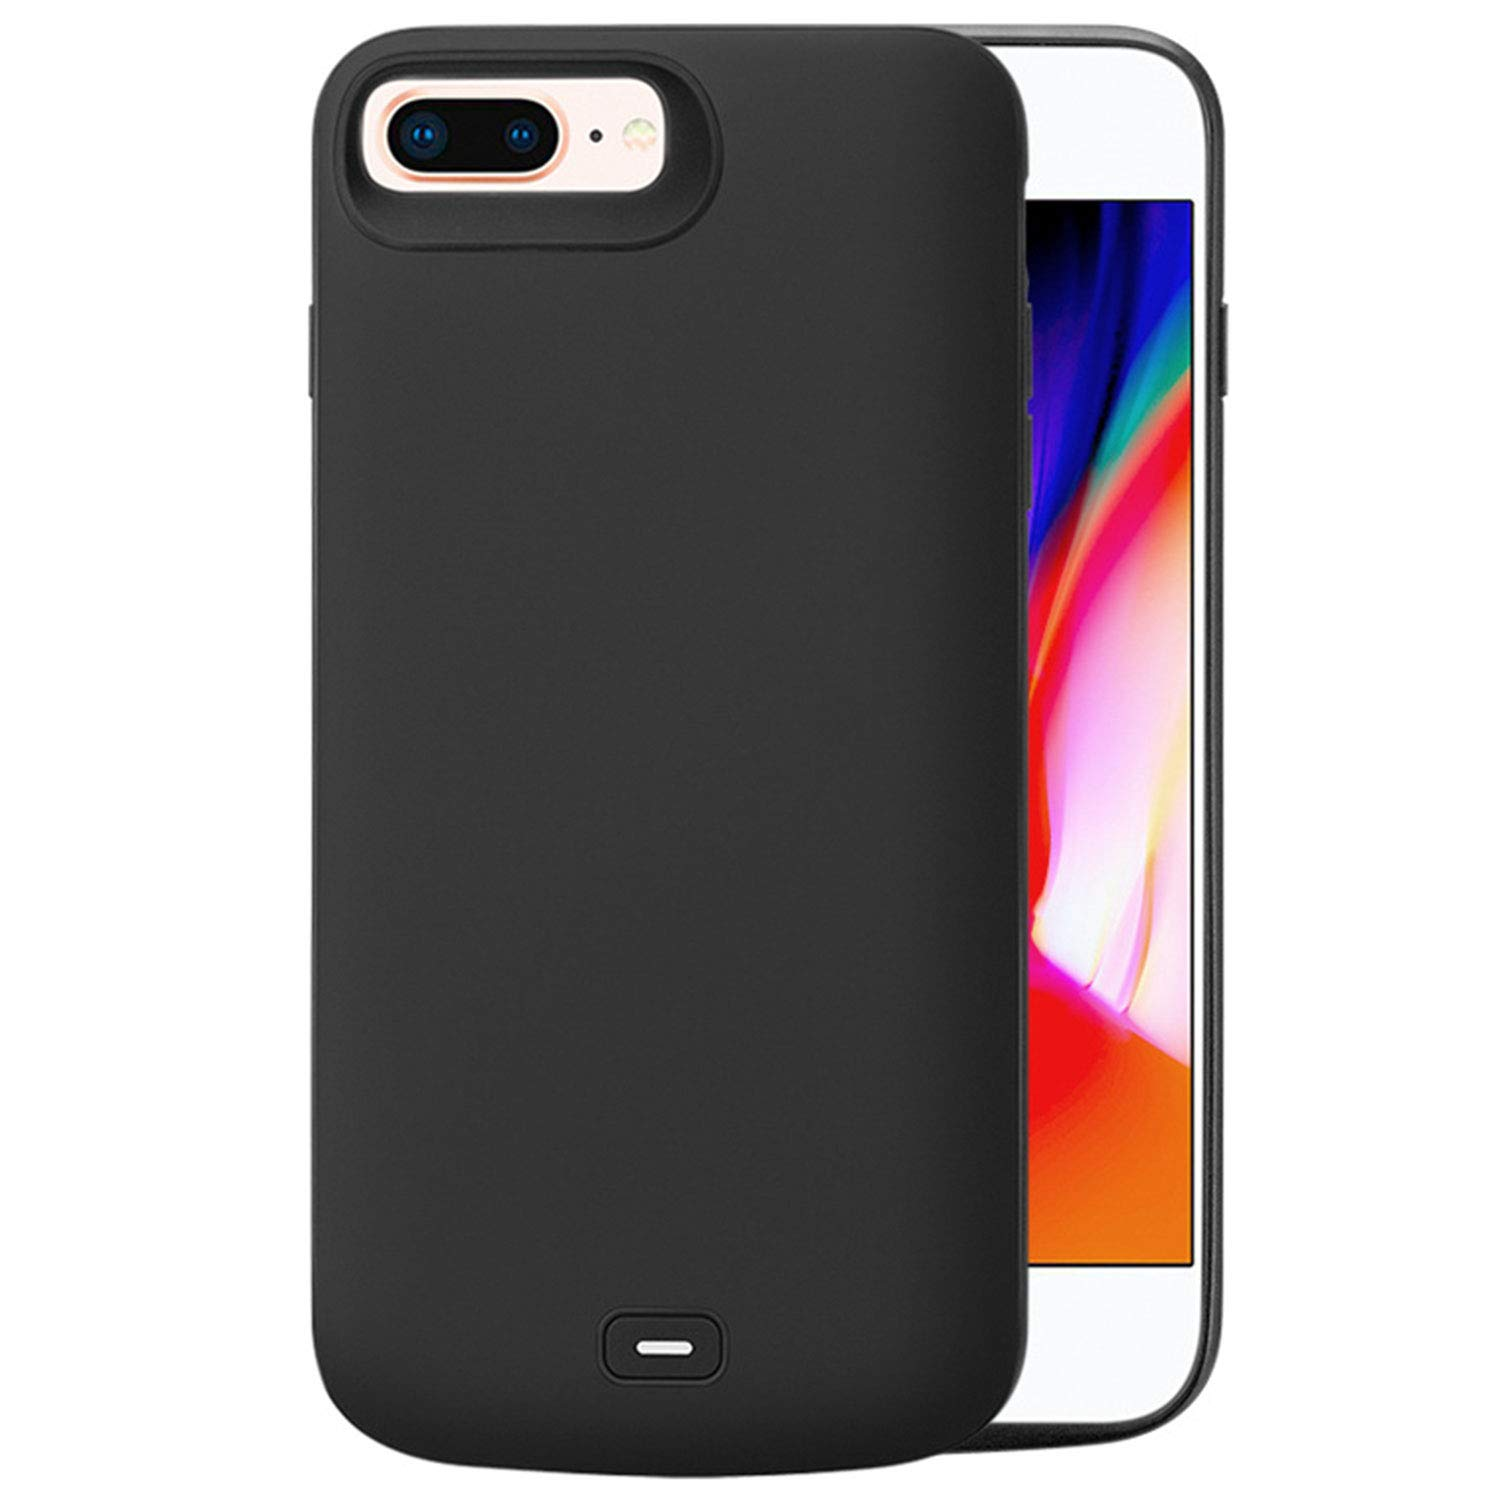 HQXHB Funda Batería para iPhone 6/6S/7/8,5500mAh Funda Cargador Portatil Batería Externa Ultra Carcasa Batería Recargable Power Bank Case para Apple ...